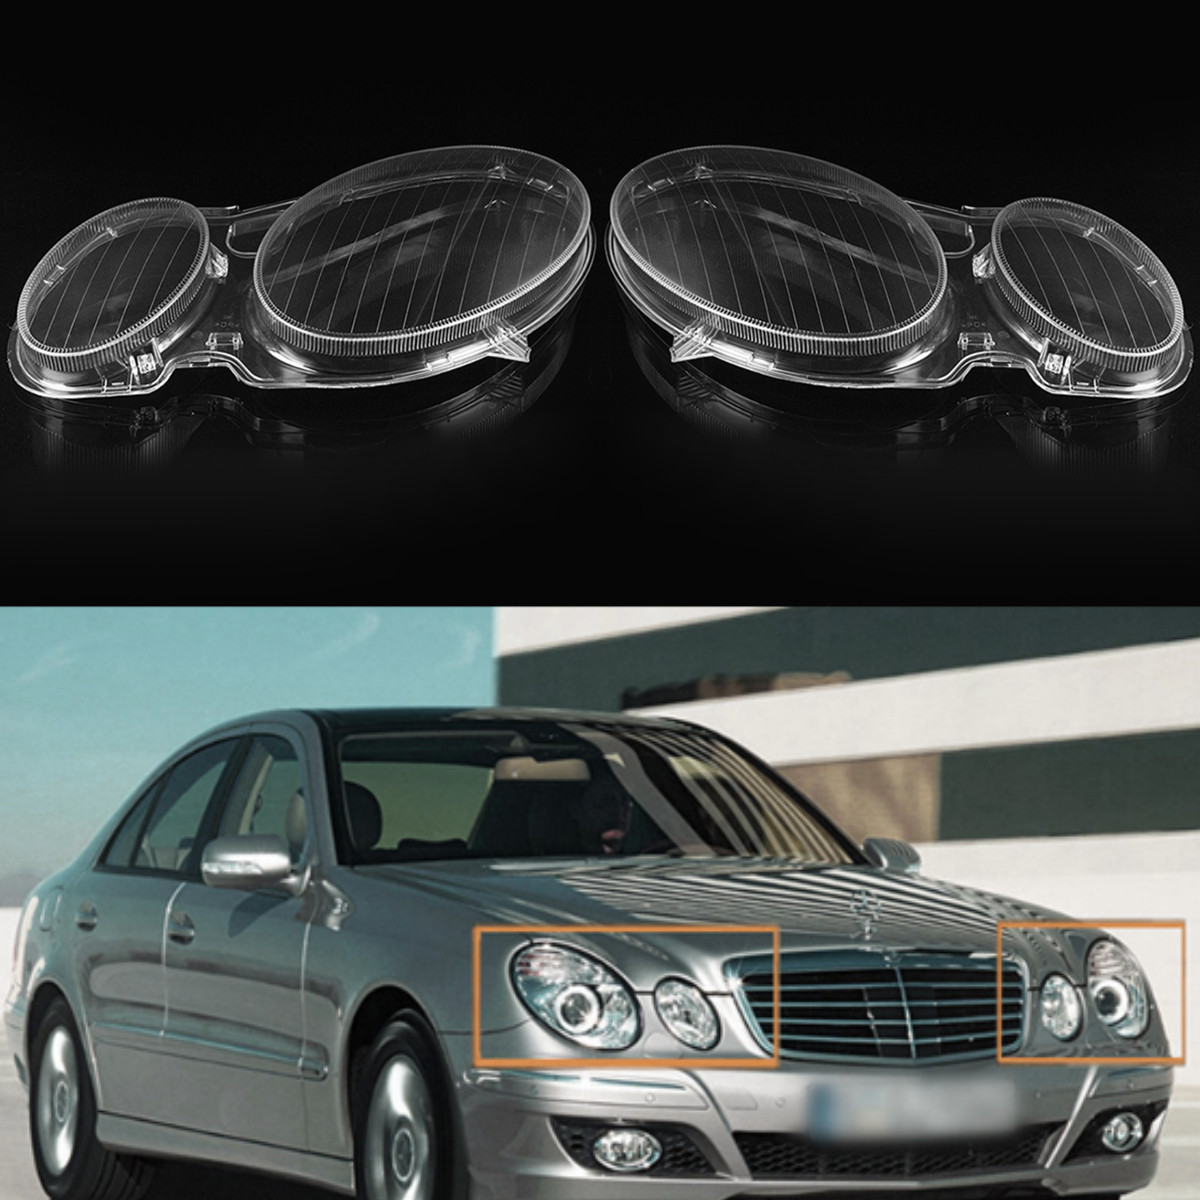 New Car Headlight Fog Light Lens Cover Shell Headlamp Lenses Cover For Mercedes For Benz E Class W211 E320 E350 2002-2008New Car Headlight Fog Light Lens Cover Shell Headlamp Lenses Cover For Mercedes For Benz E Class W211 E320 E350 2002-2008